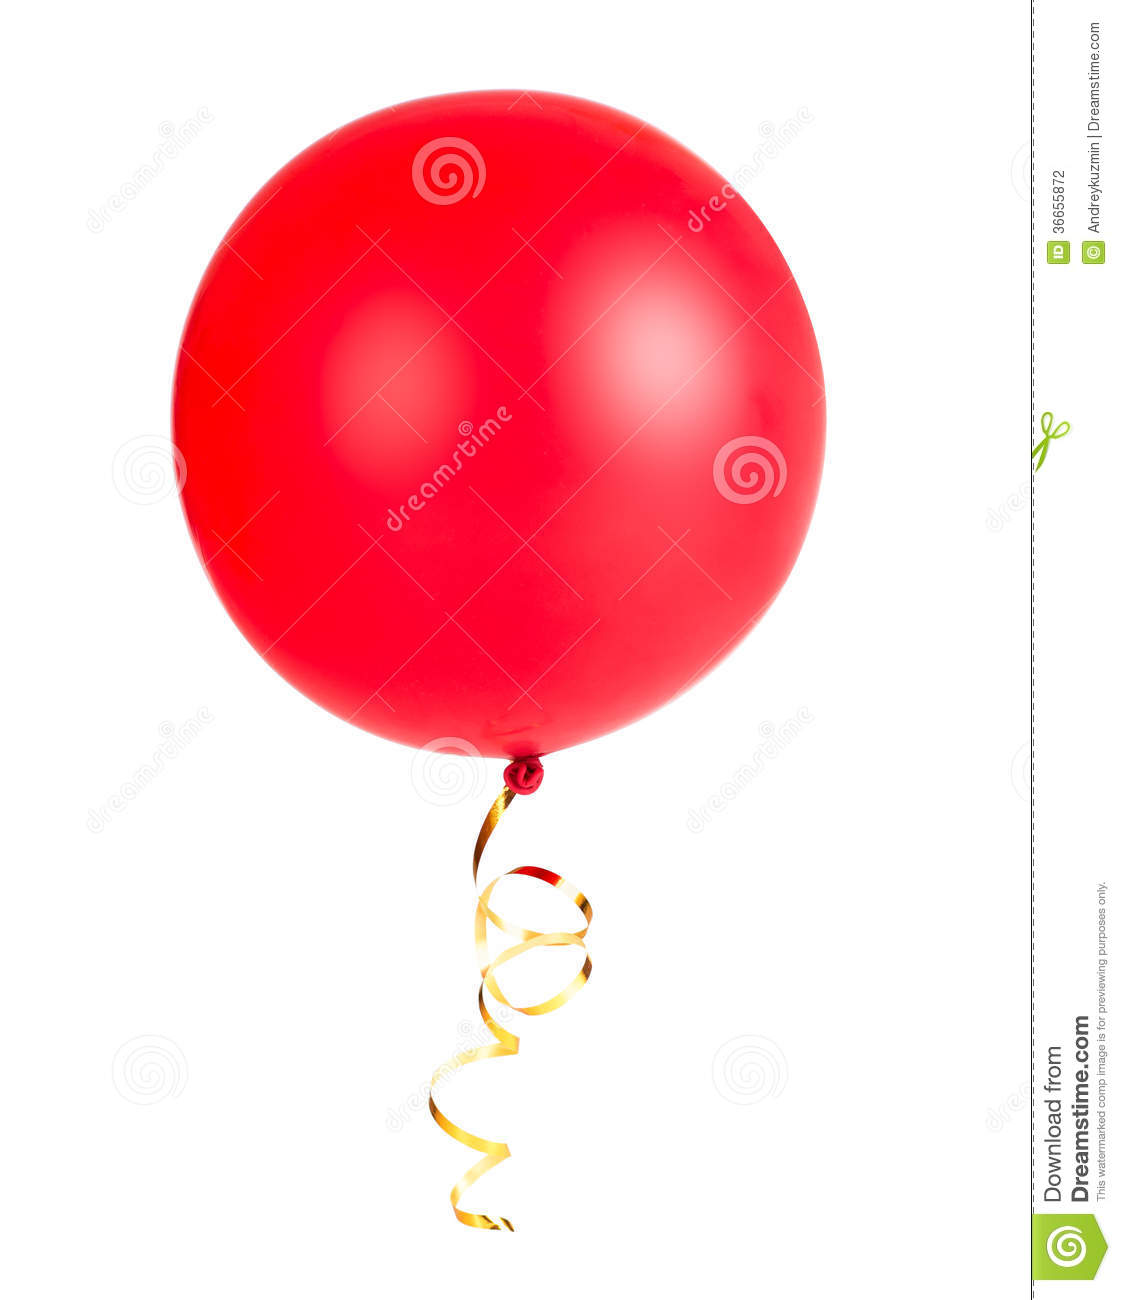 Red balloon photo with gold string or ribbon isolated